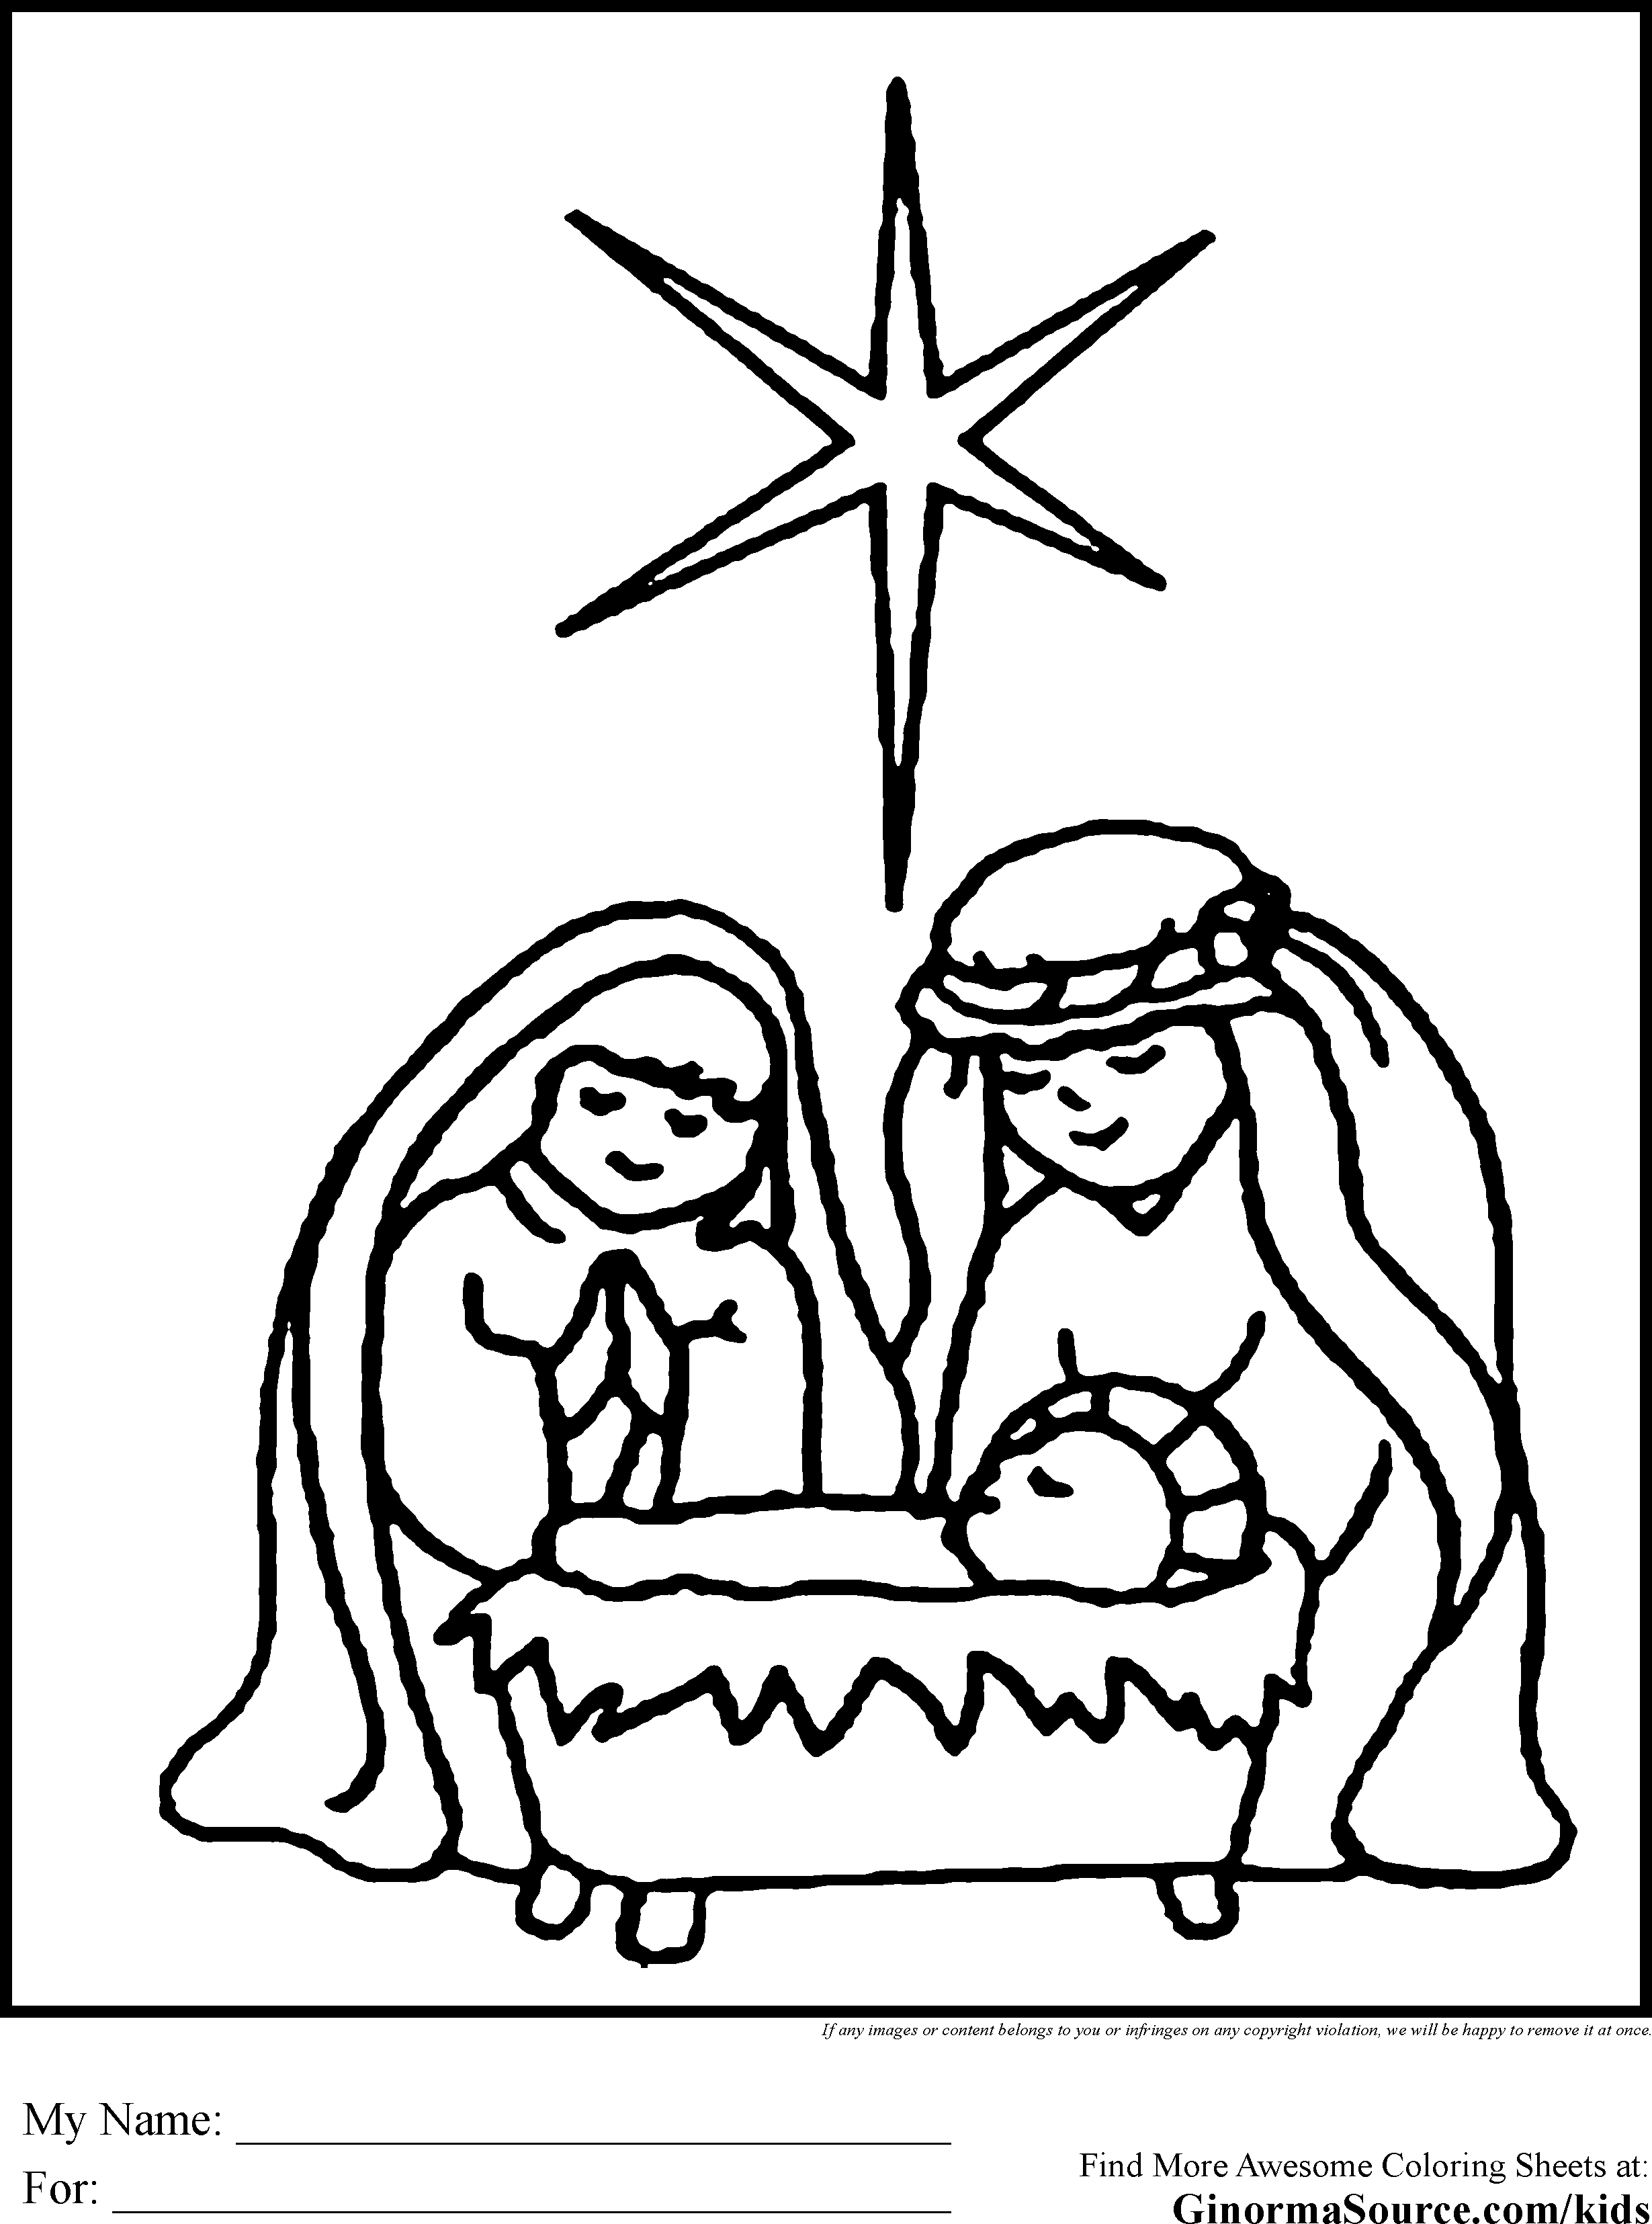 Free coloring pages nativity scene - Free Printable Bible Coloring Pages Bible Coloring Sheets Coloring Book Pictures Christian Coloring Pages And More